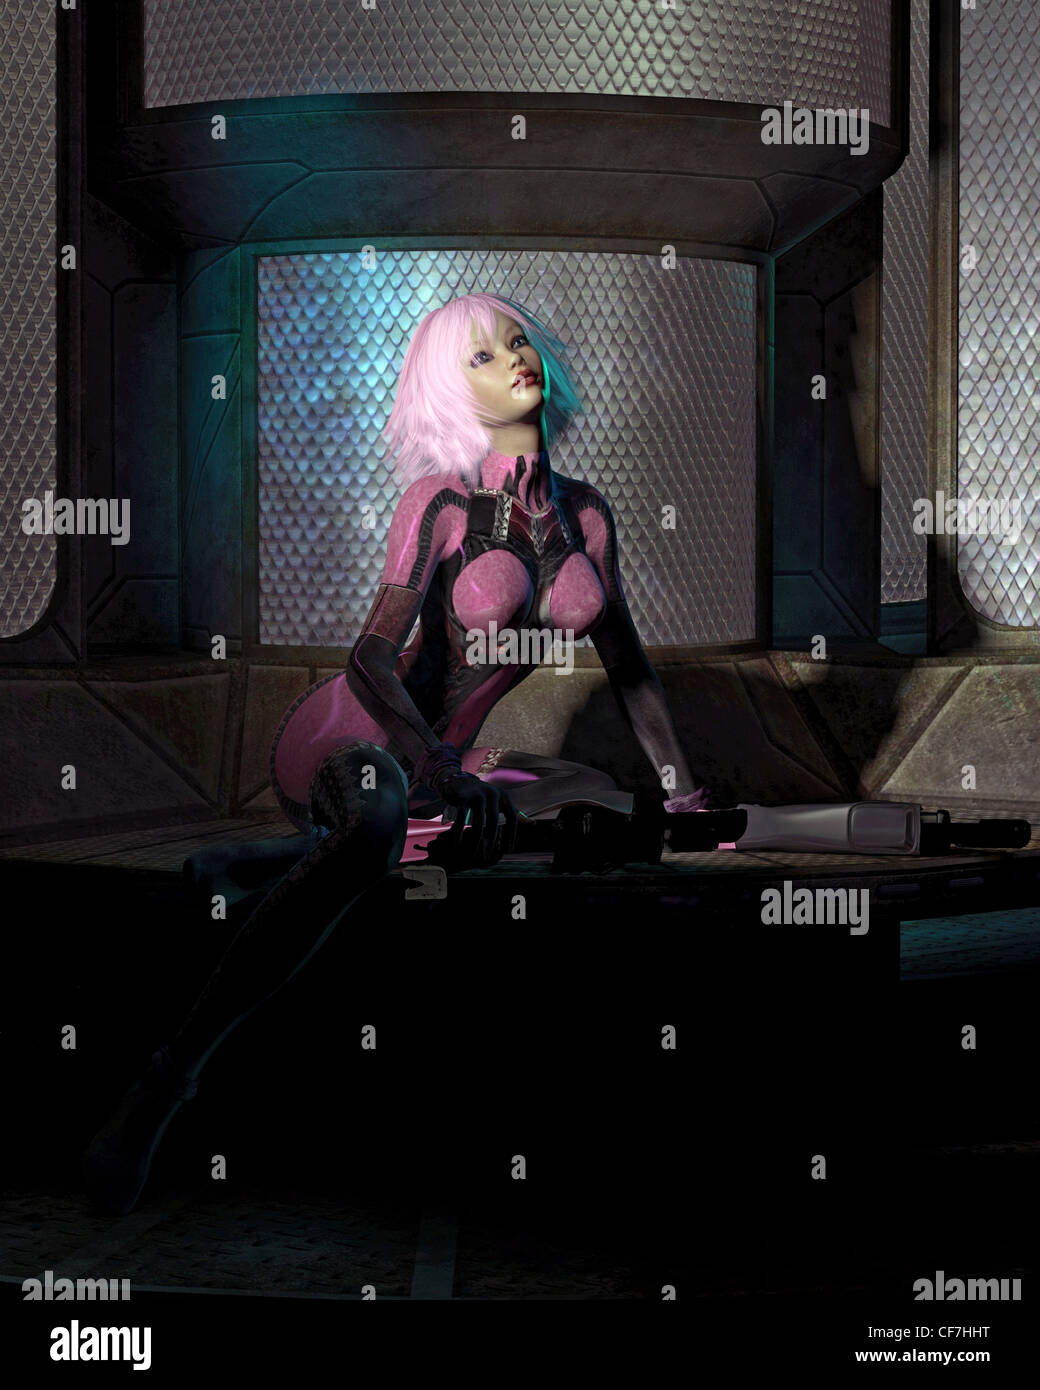 Science Fiction Catsuit Girl in a Dark Room - Stock Image